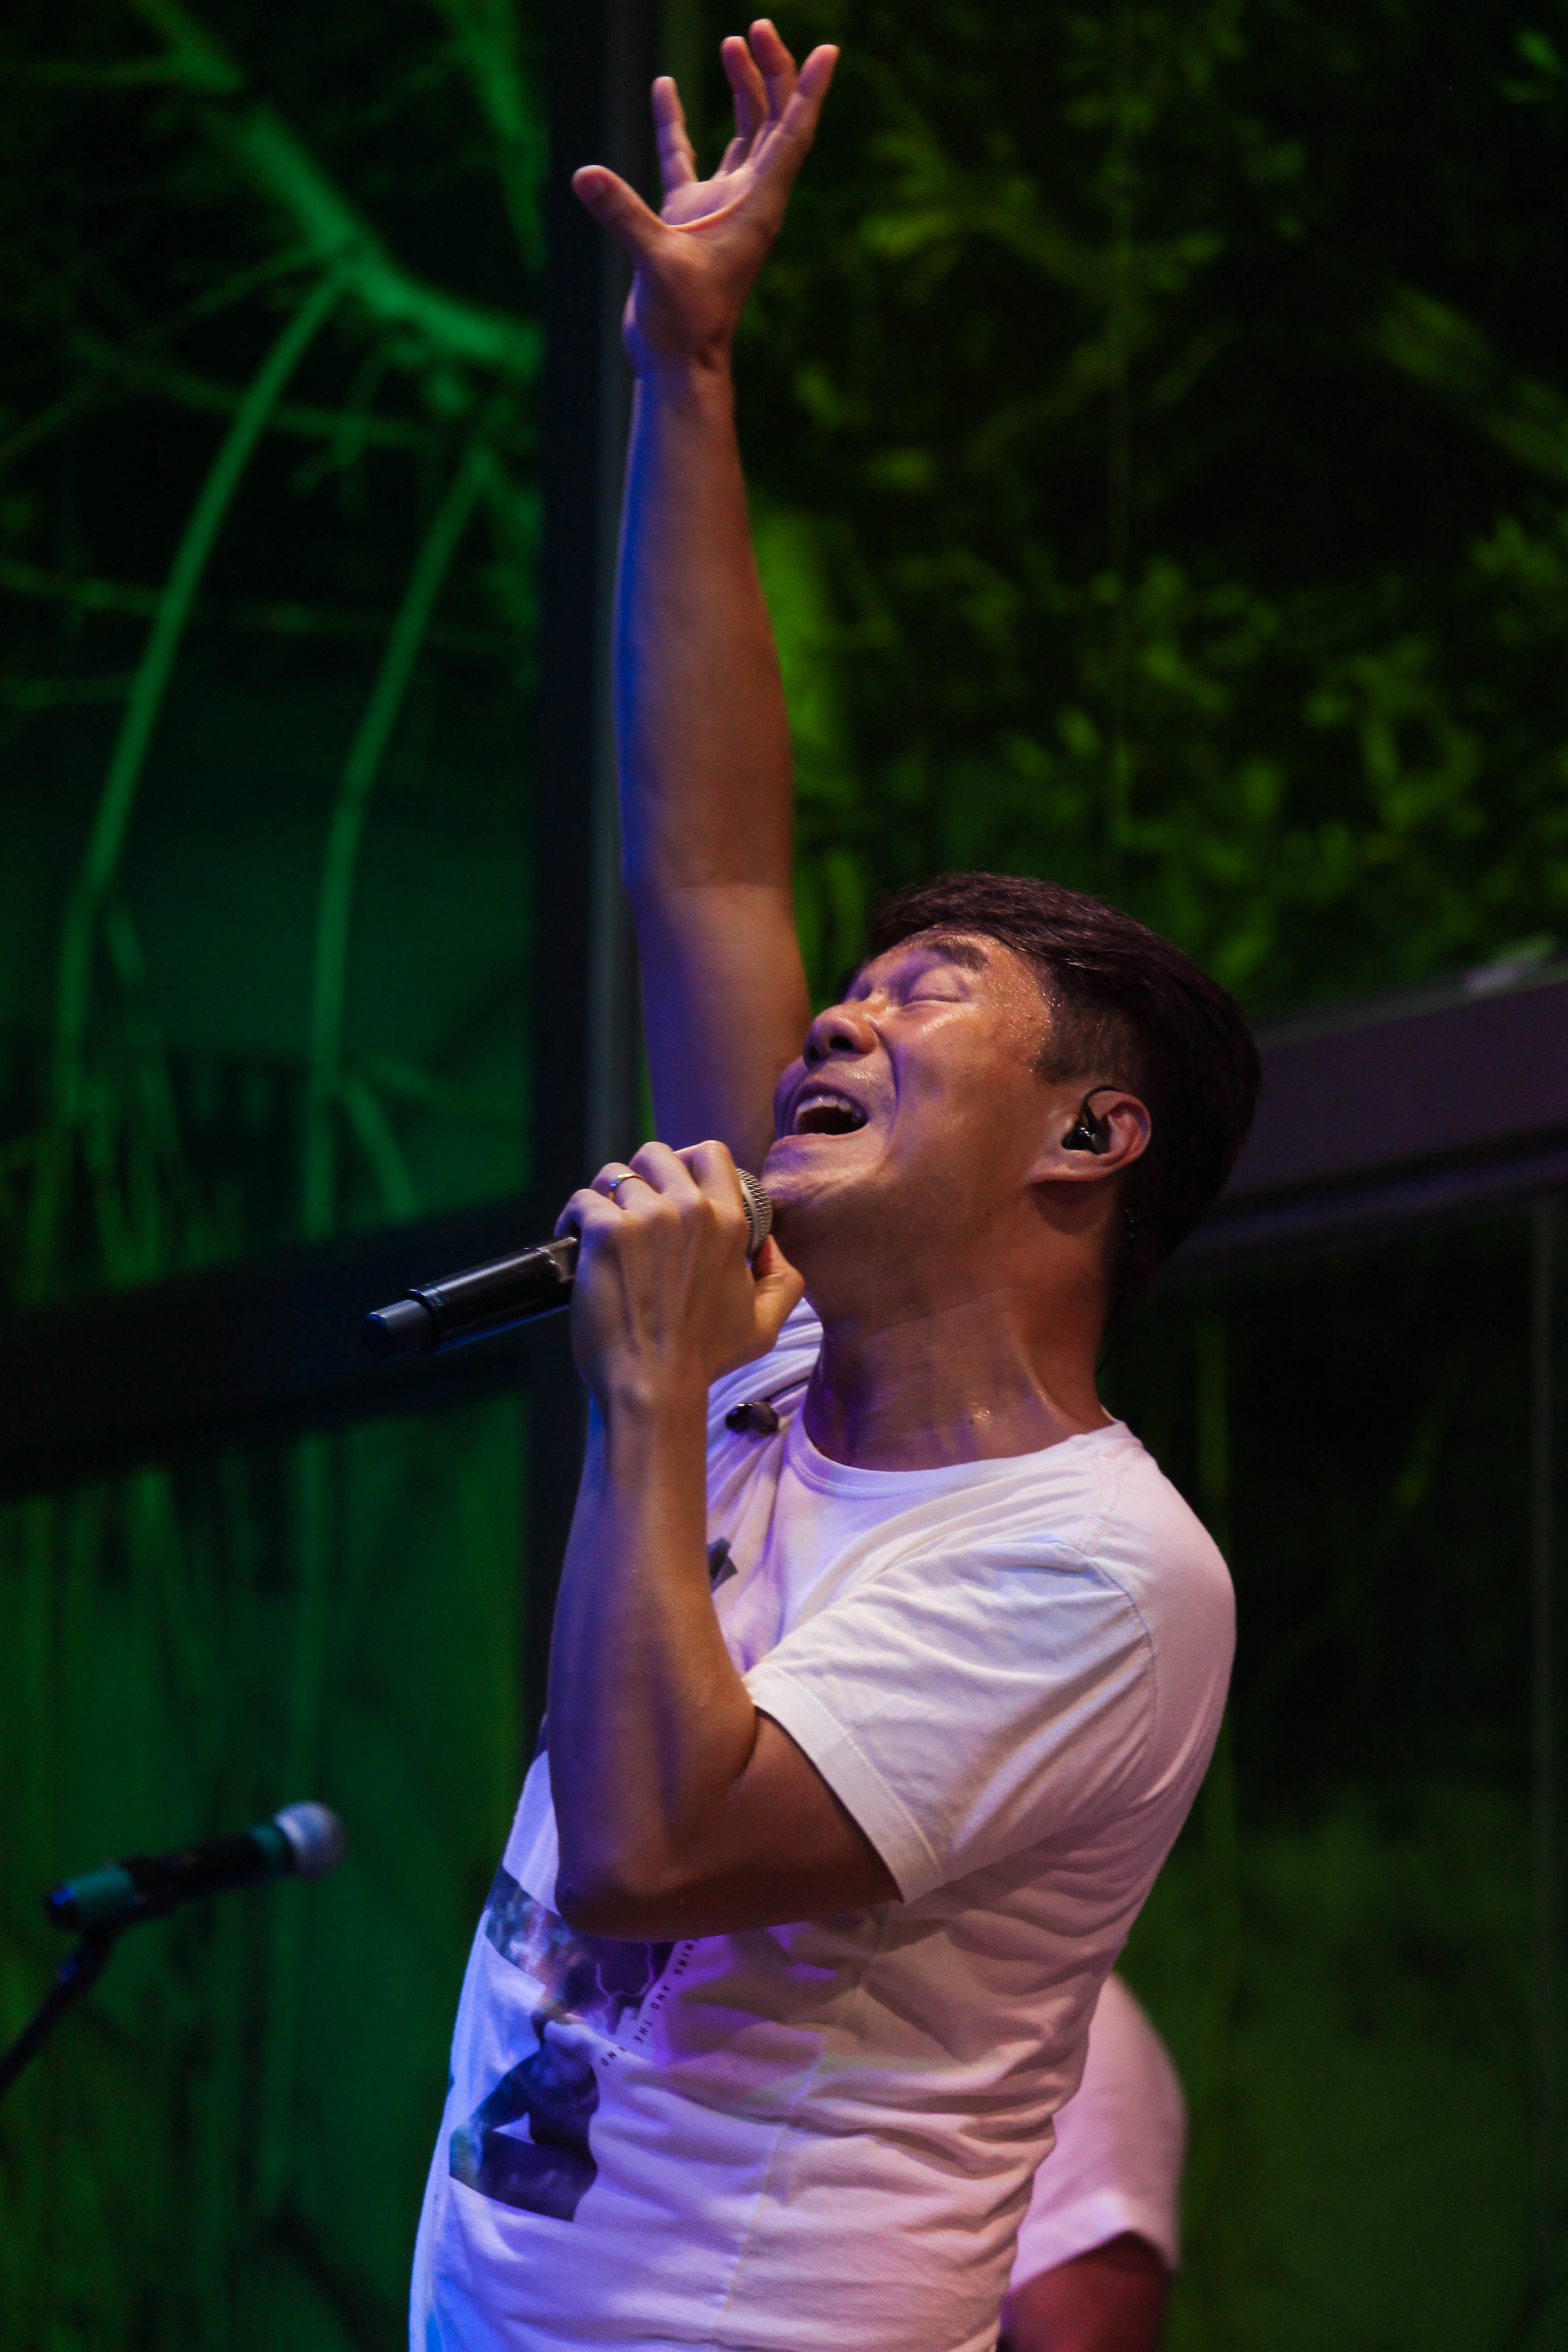 Man Wearing White T-shirt Singing at the Stage